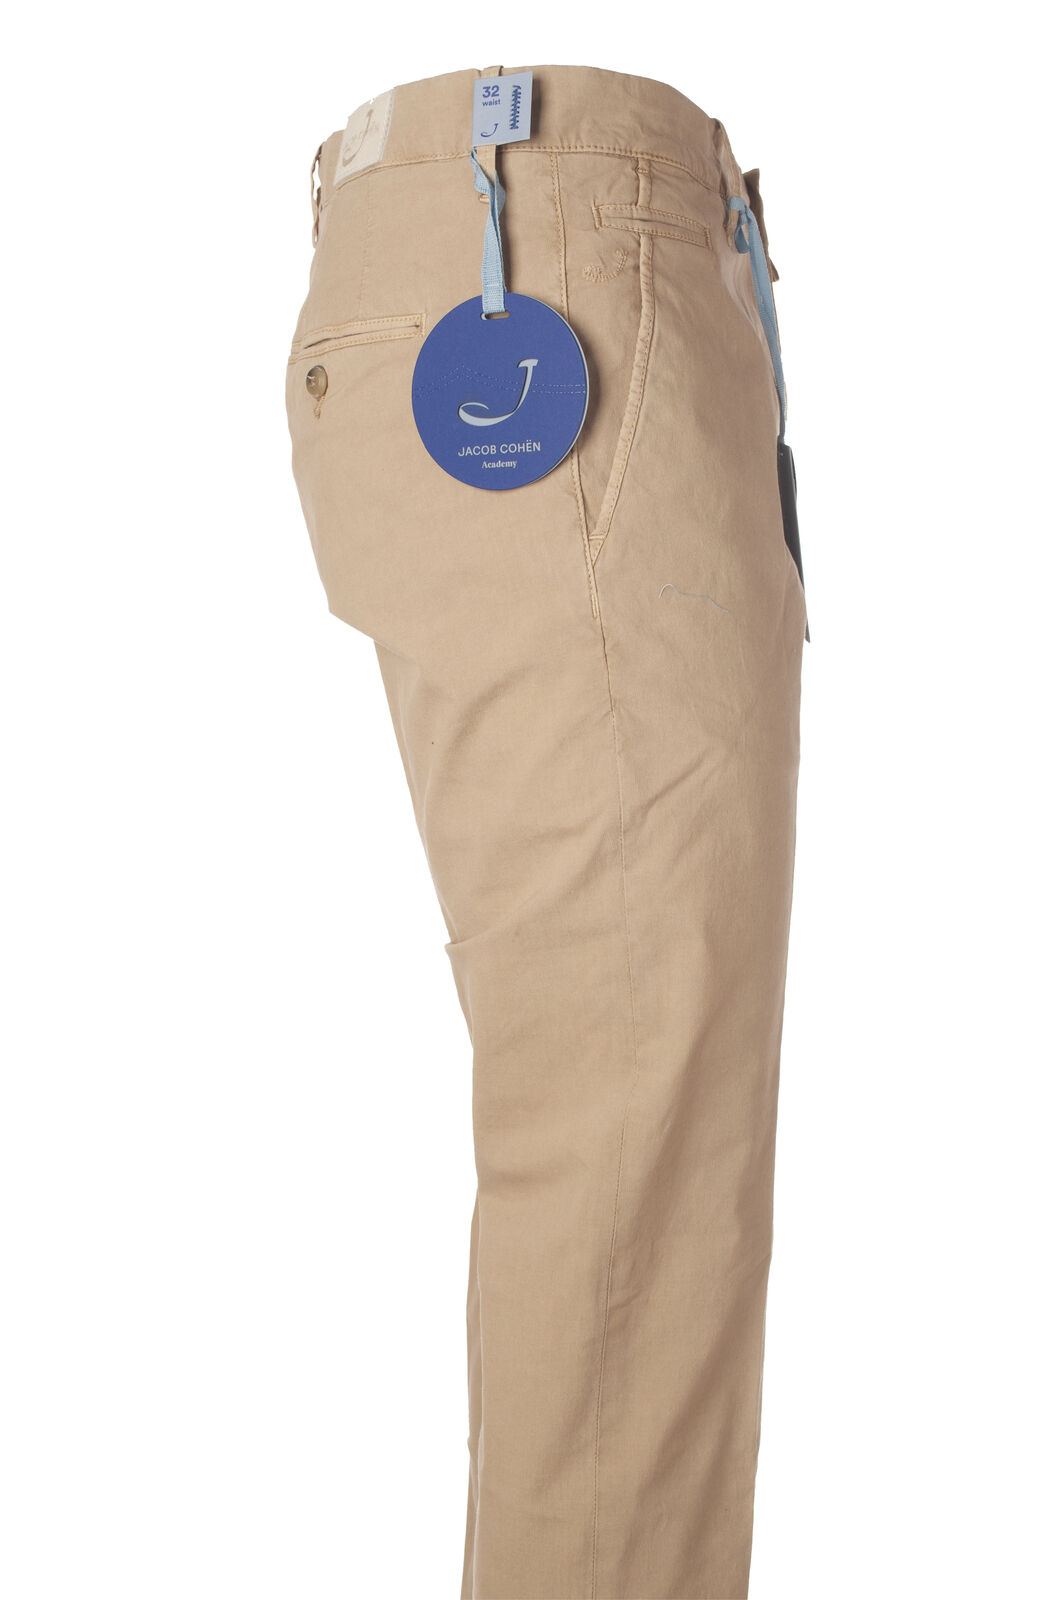 Jacob Cohen - Pants-Pants - Man - Beige - 5981012C190612